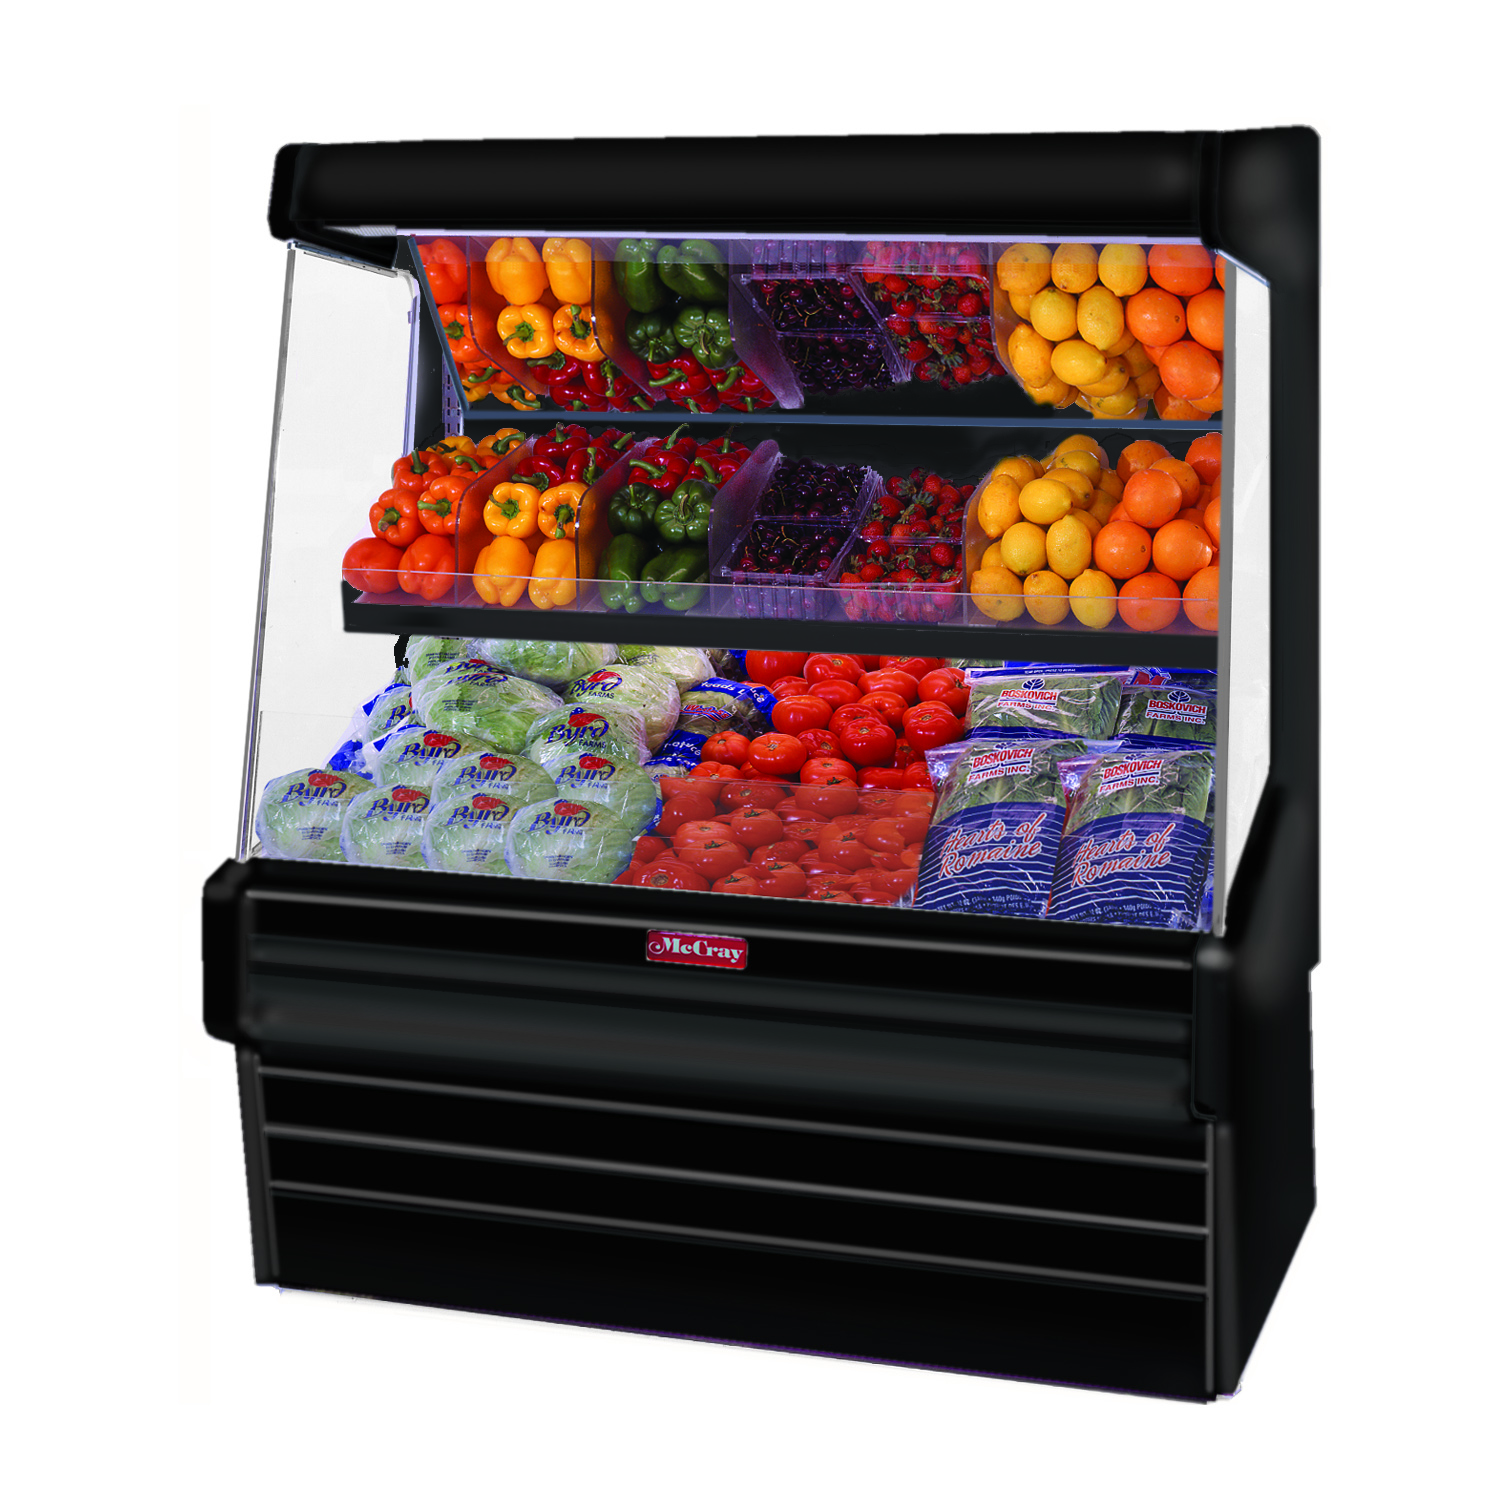 Howard-McCray SC-OP30E-3L-B-LED display case, produce